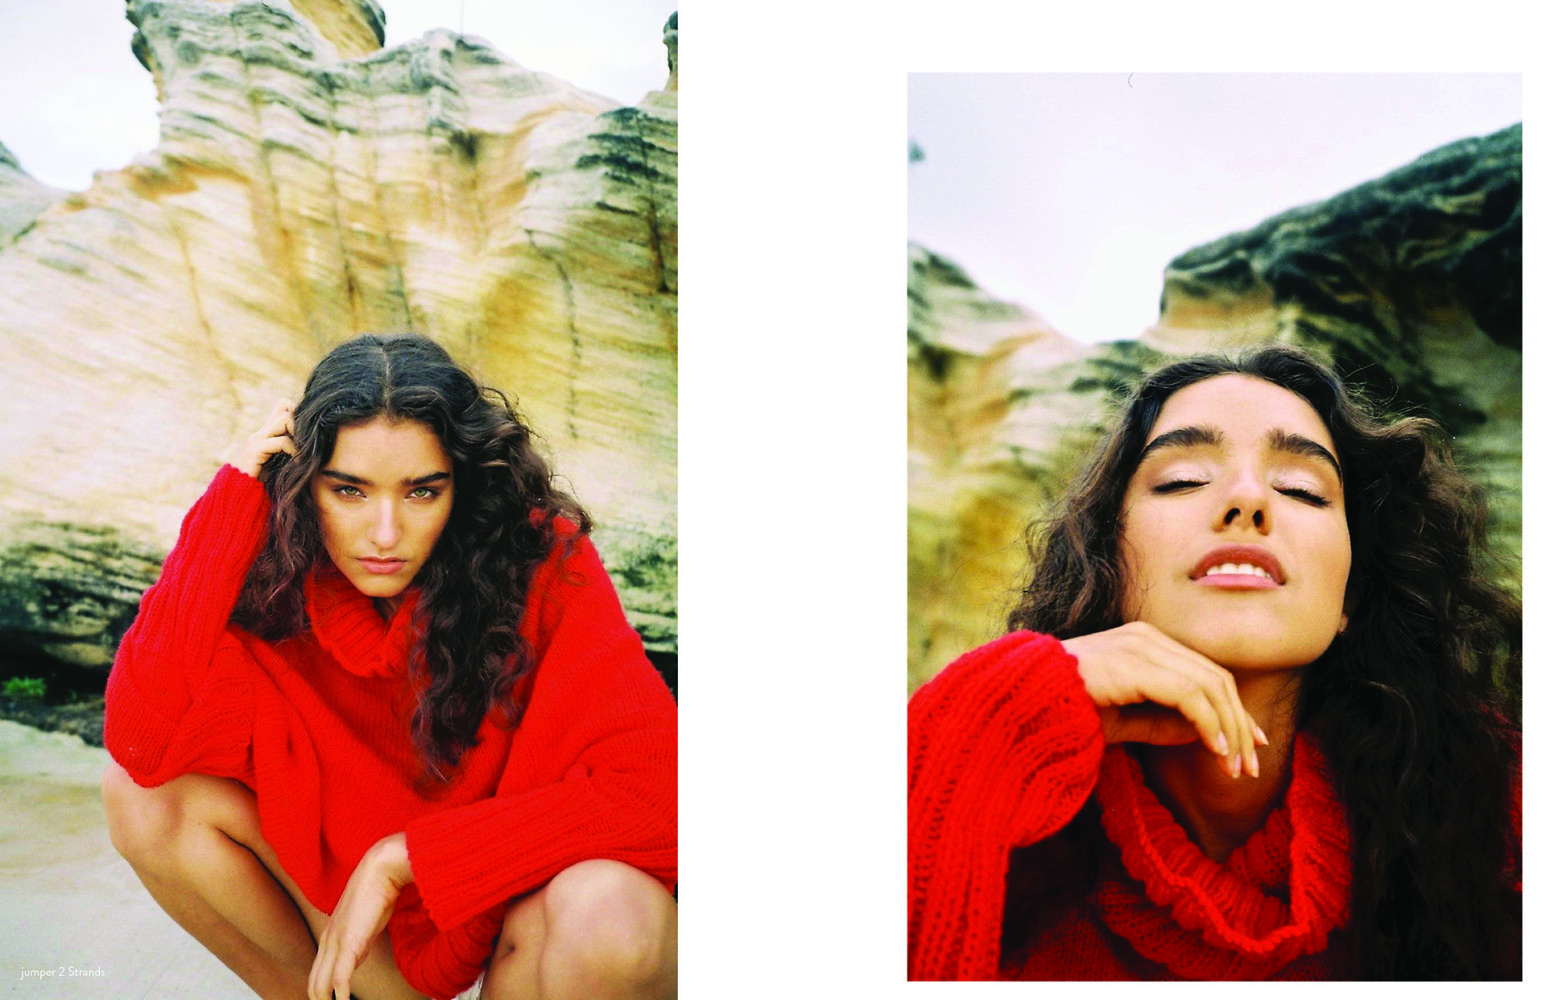 SPOTTED: SALT // KENNEDY FOR FLANELLE MAGAZINE